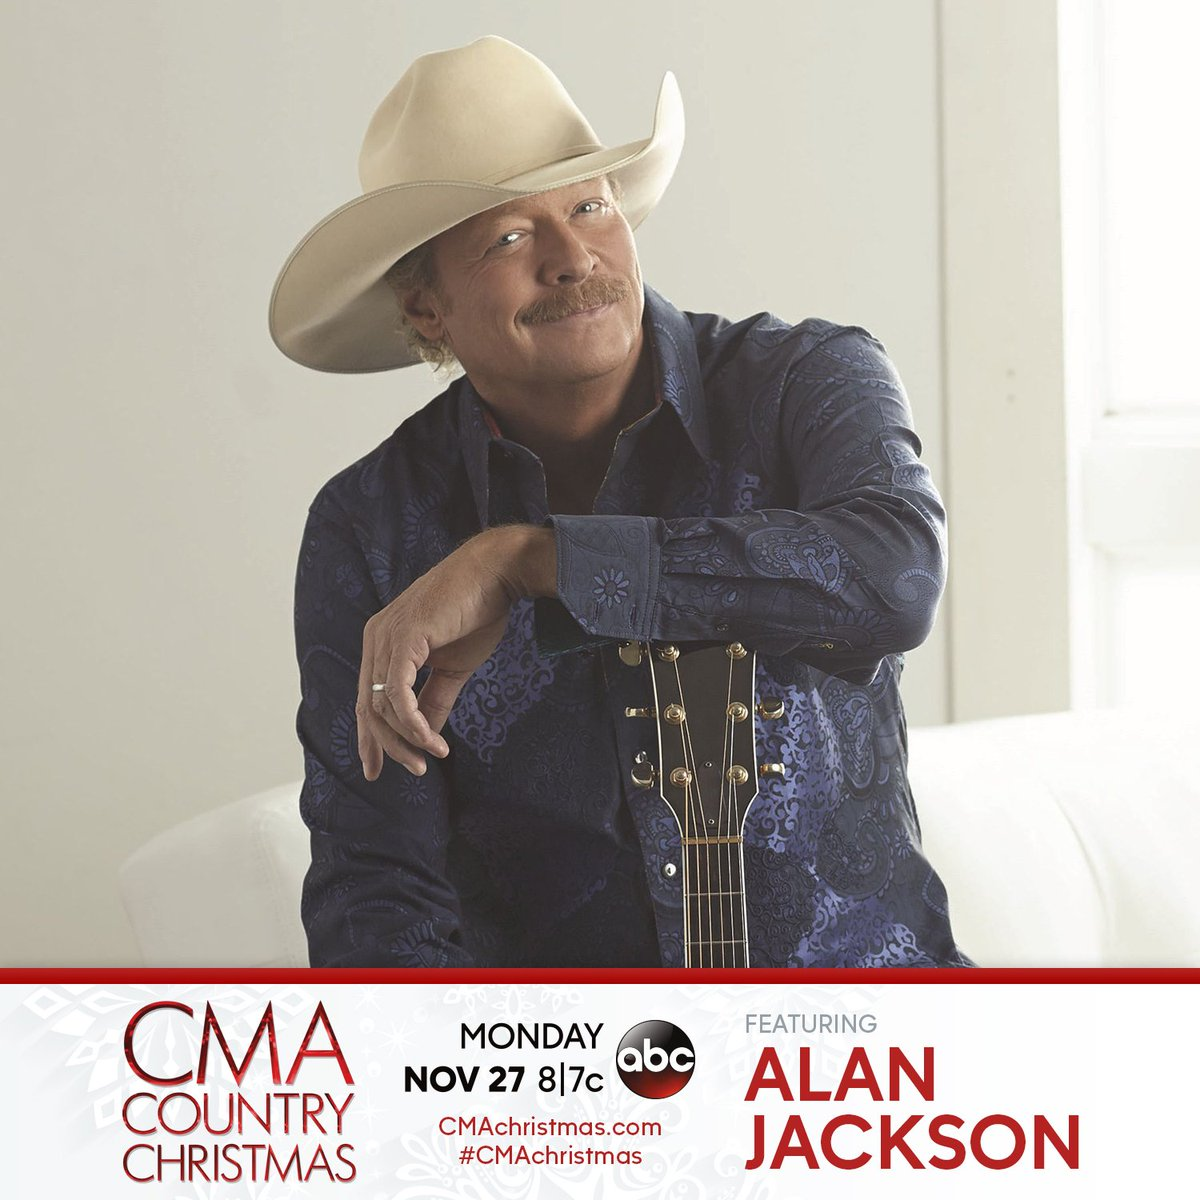 RT @OfficialJackson: Watch Alan help ring in the holiday season with #CMAchristmas TONIGHT at 8|7c on @ABCNetwork! https://t.co/fVjBx1yADF